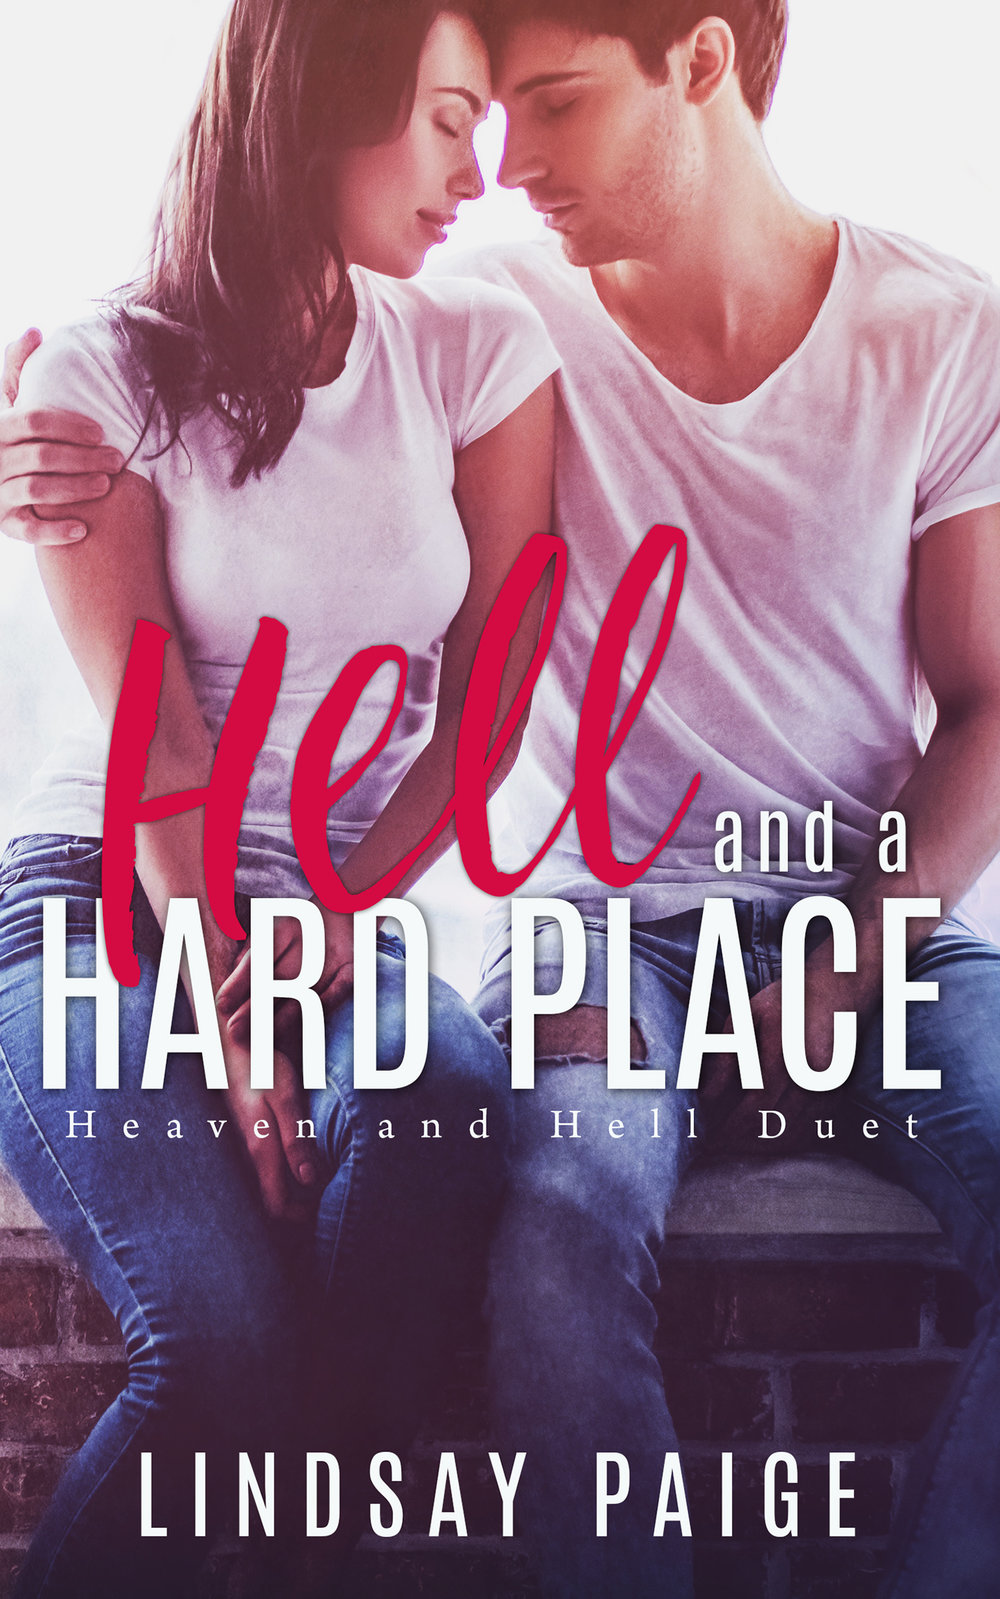 Sneak Peek: Chapter One of Hell and a Hard Place